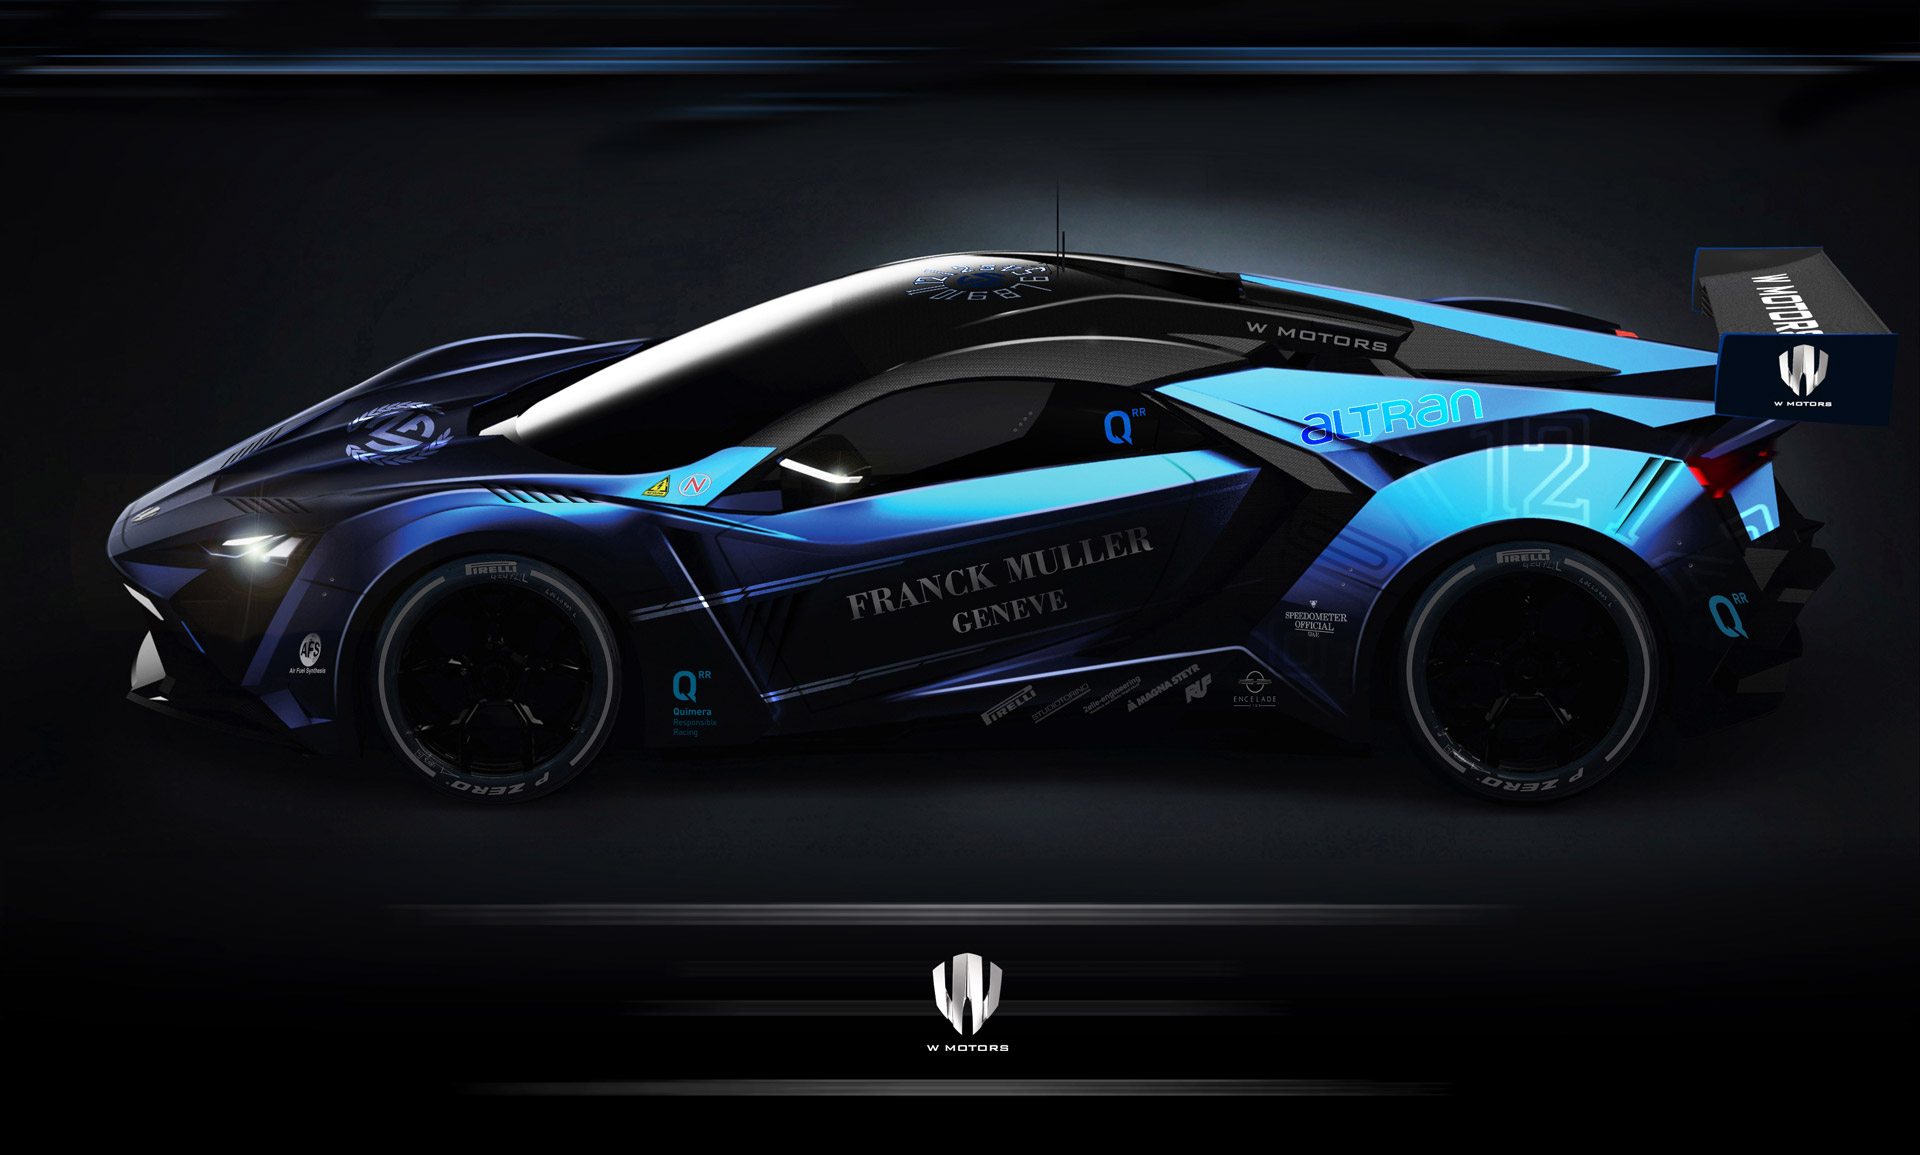 W Motors Teams Up With Quimera To Develop Eco-Friendly ...